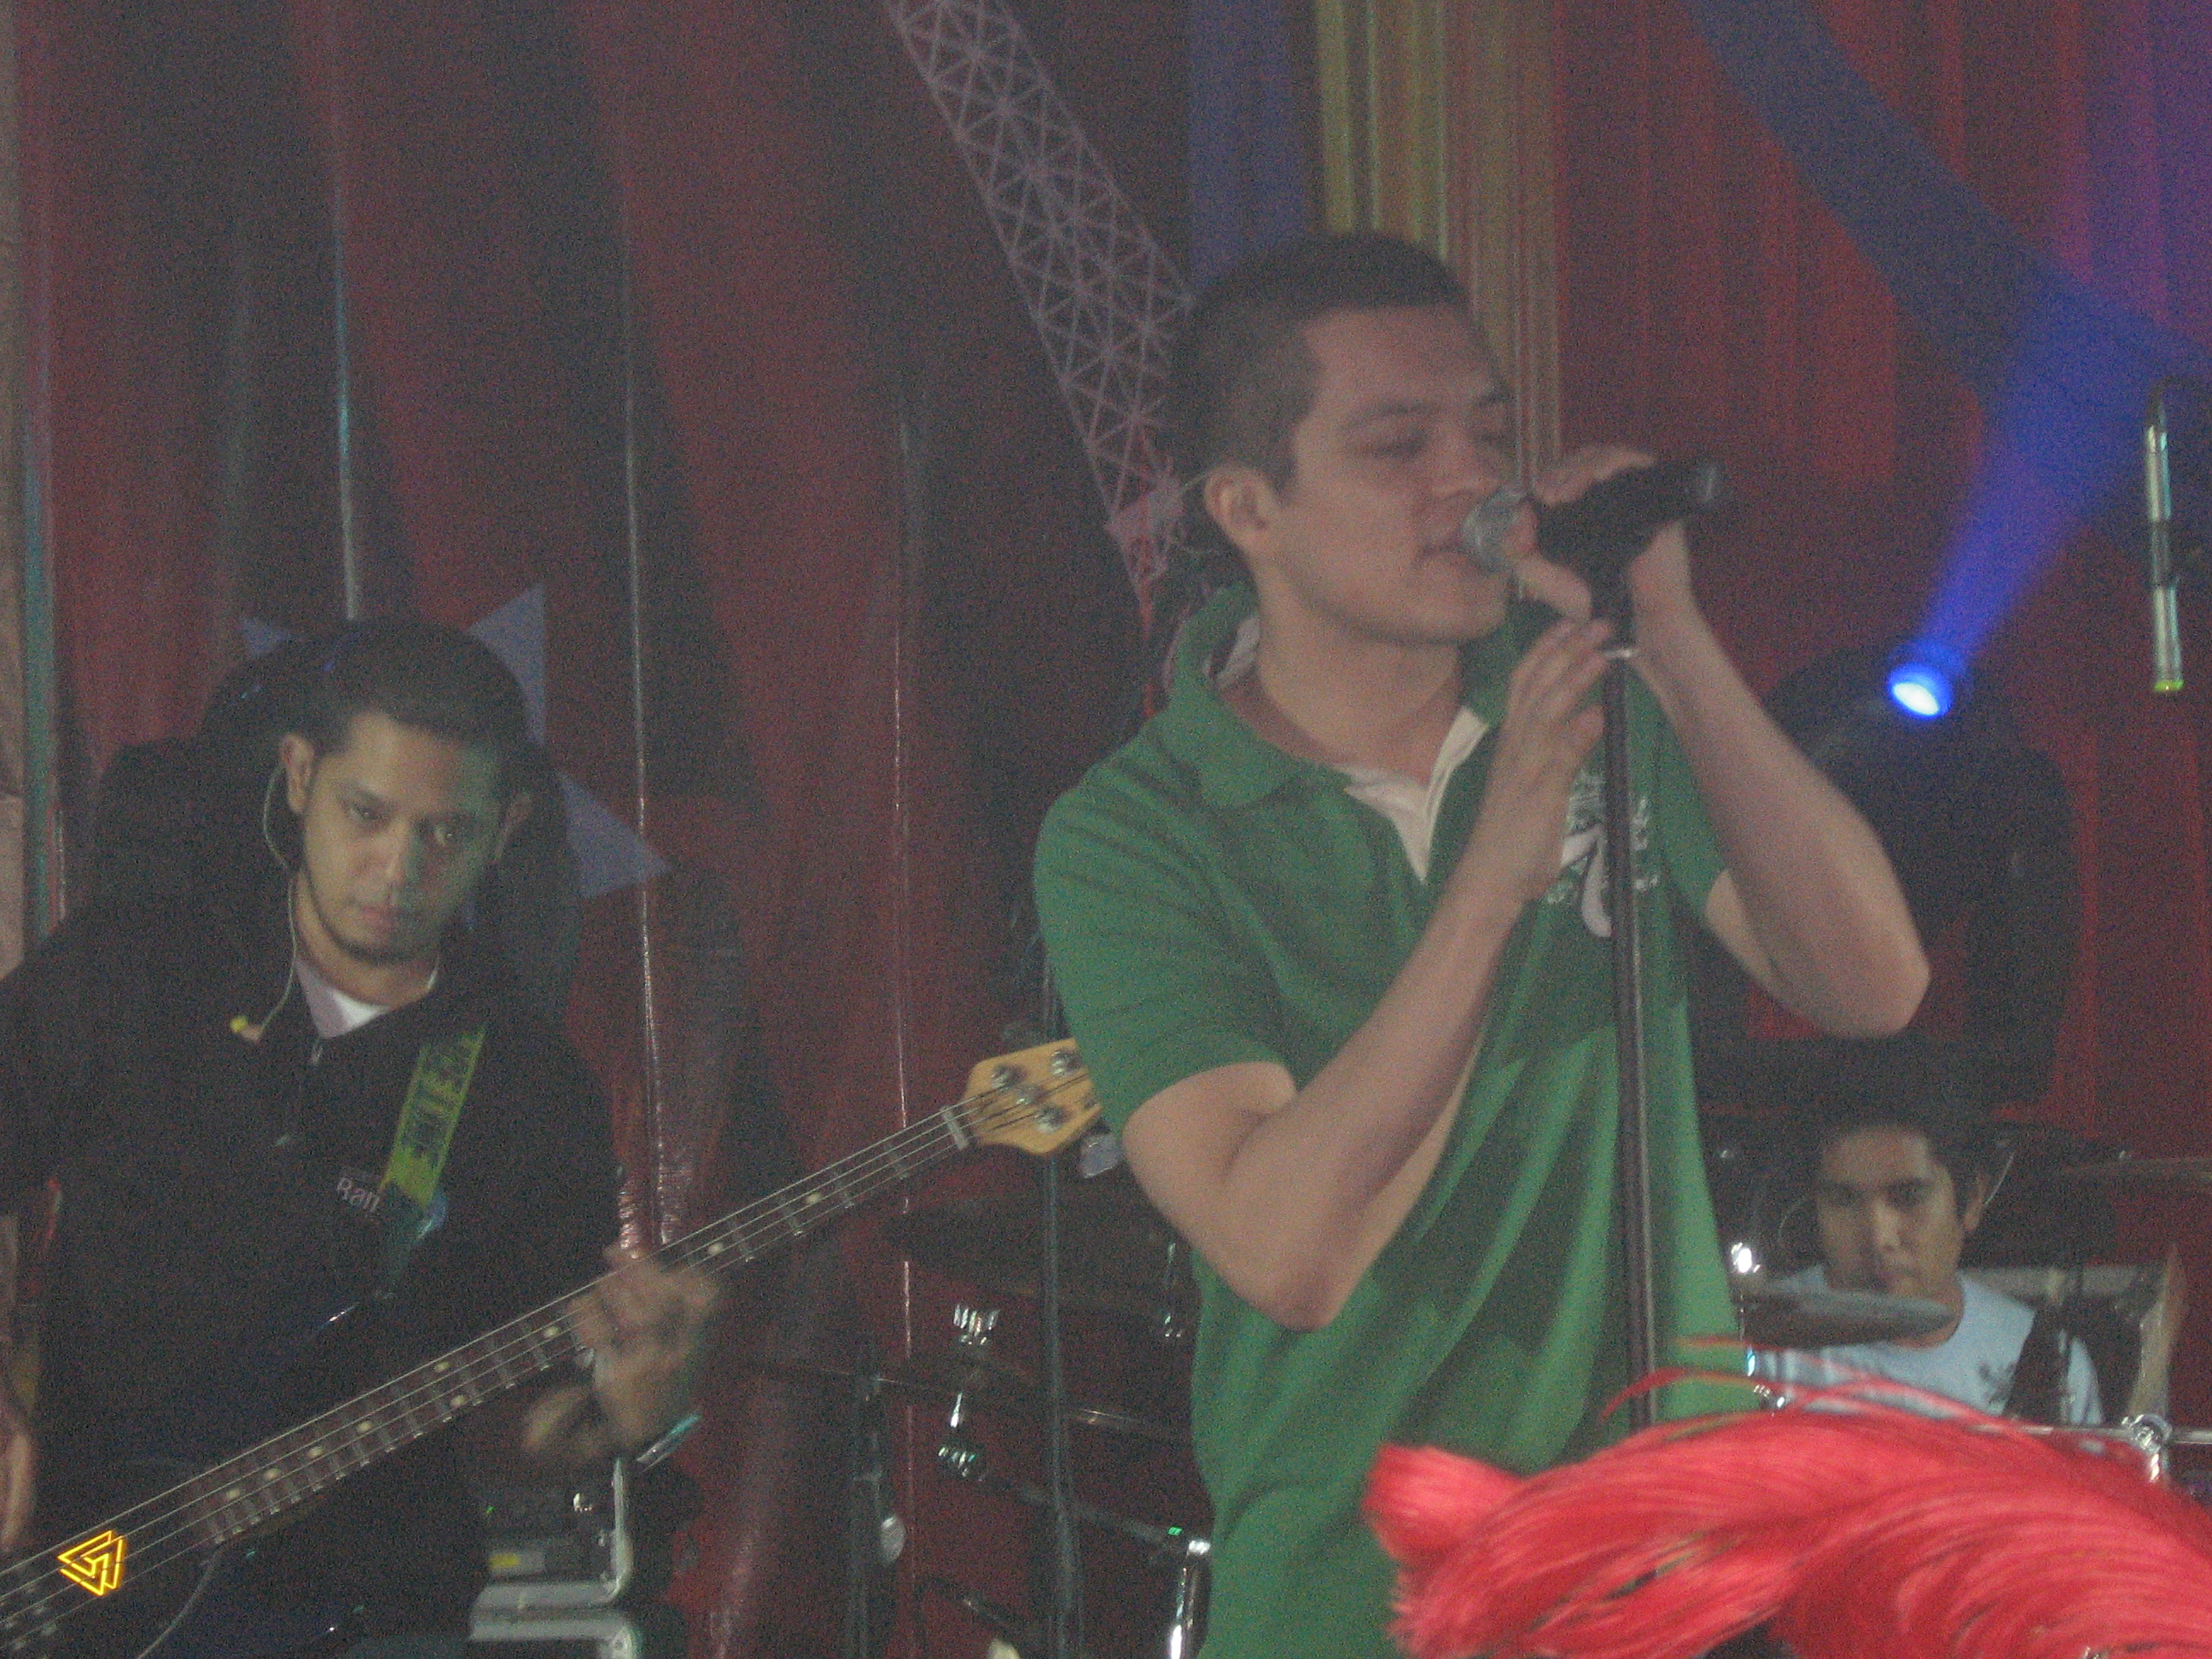 Bamboo (band) - Wikipedia, the free encyclopedia